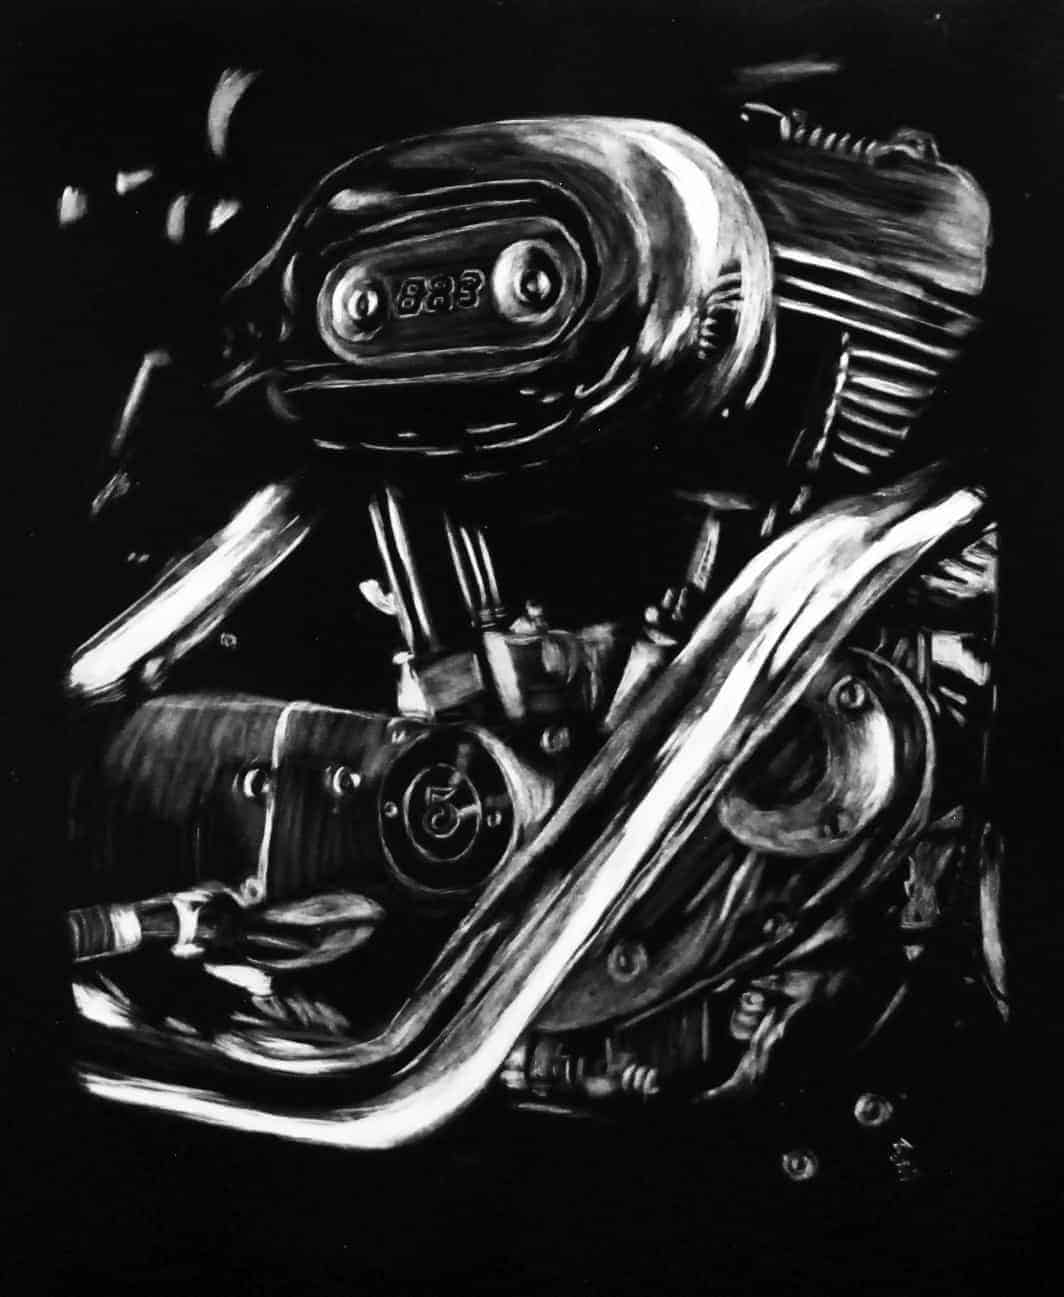 Harley 103 V-Twin engine